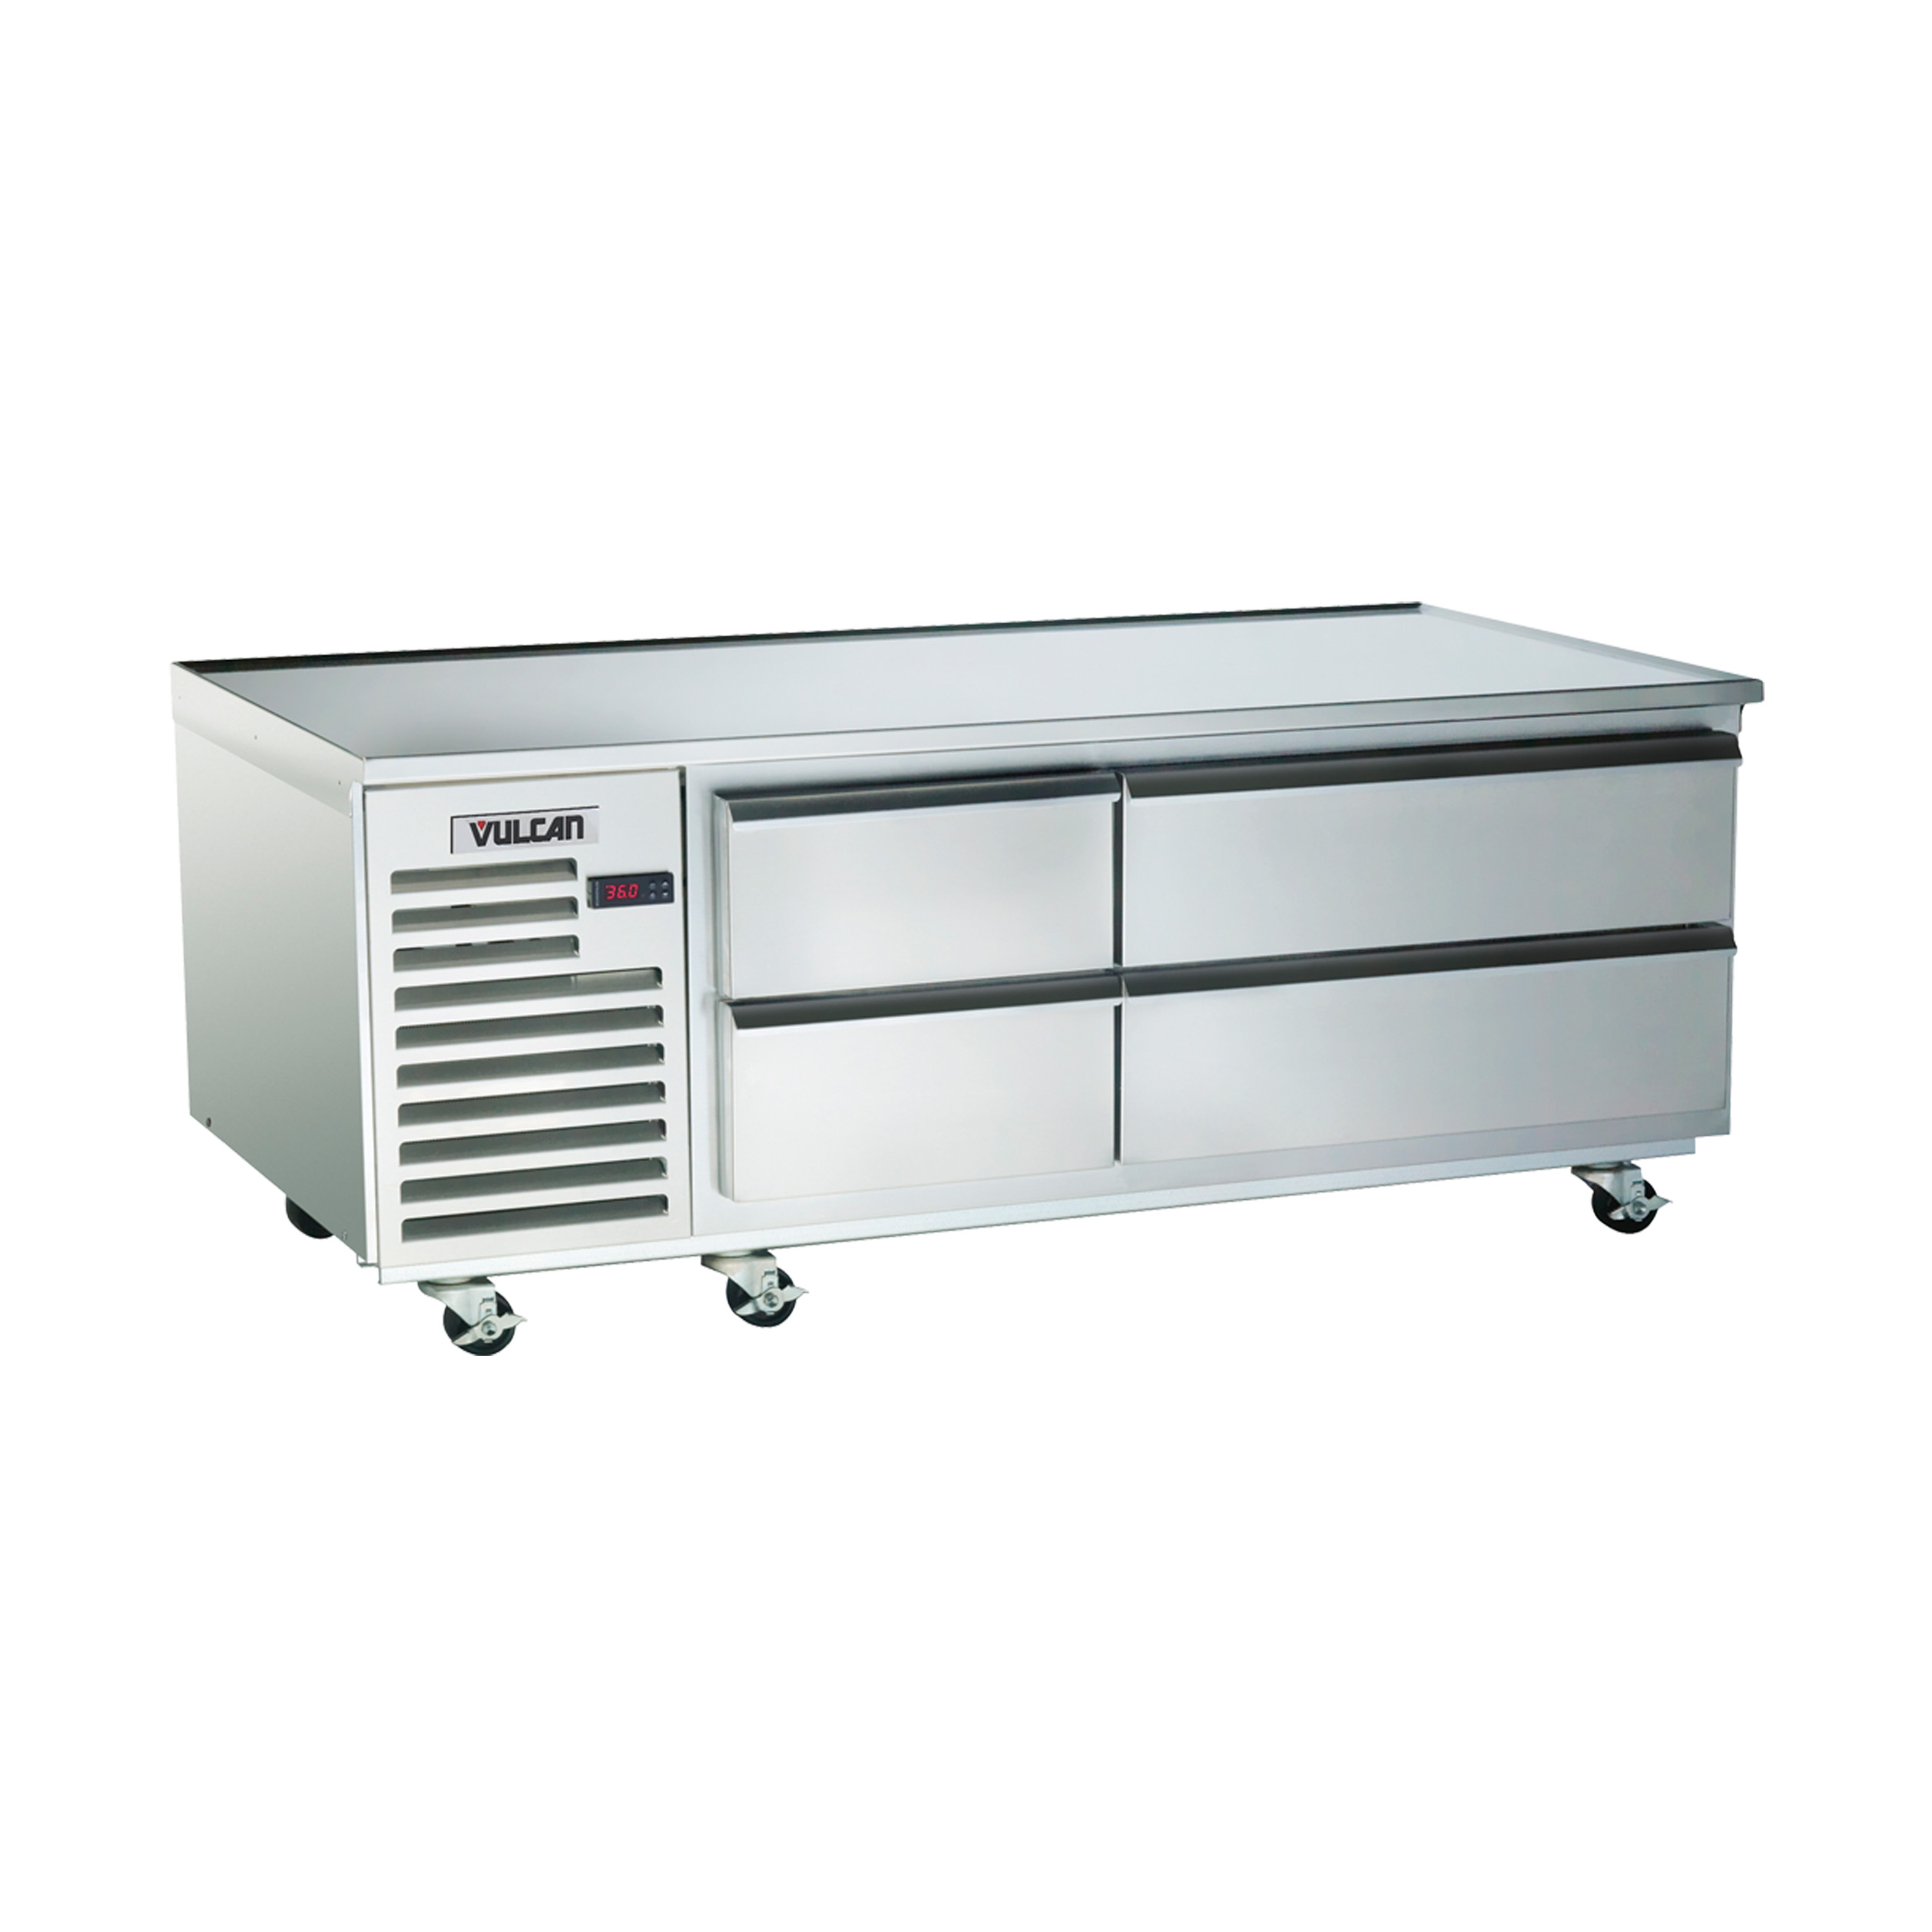 Vulcan ARS36 equipment stand, refrigerated base